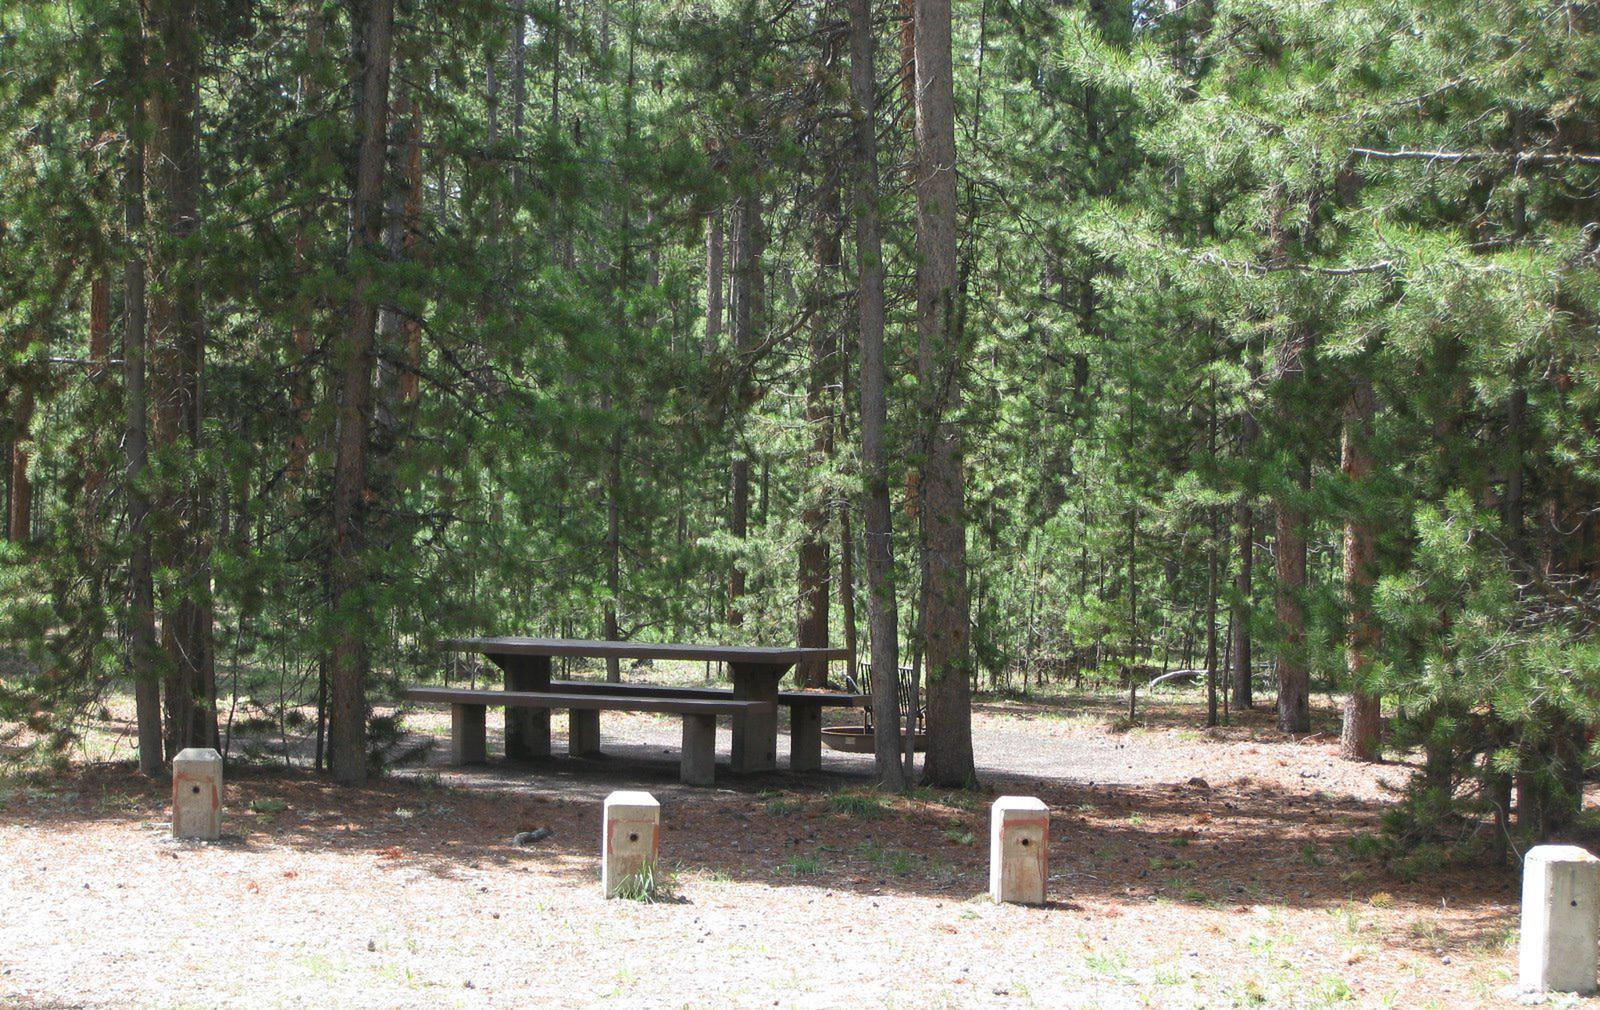 Site B15, surrounded by pine trees, picnic table & fire ringSite B15